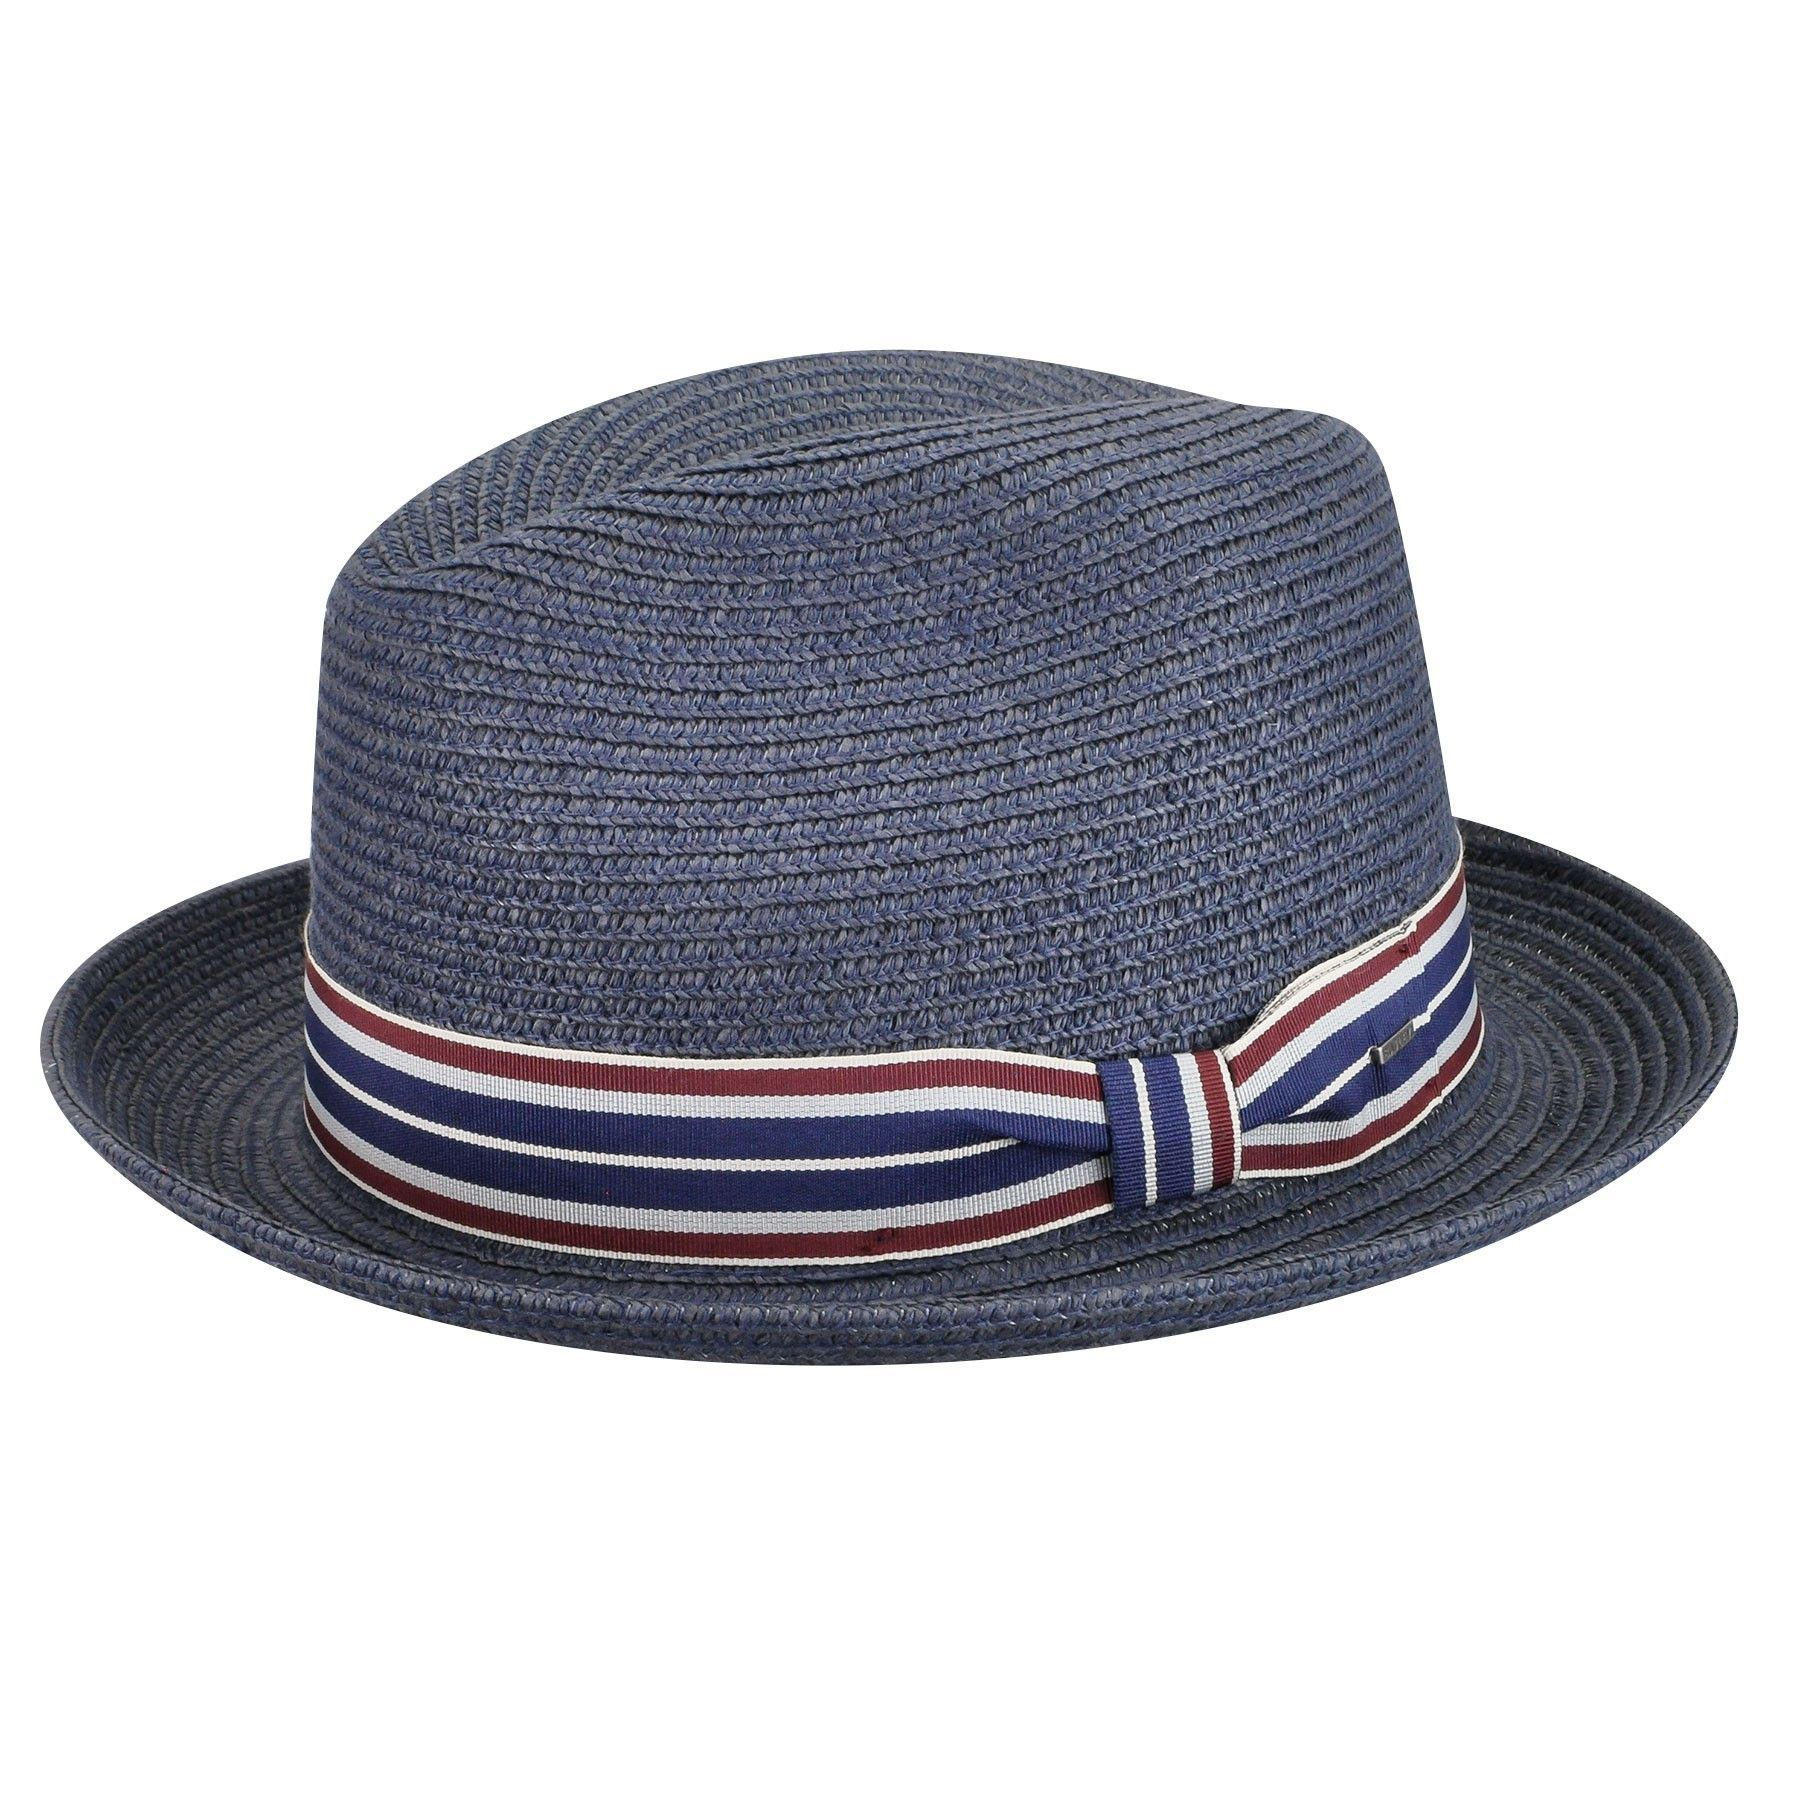 53a71e48 Bailey Of Hollywood Salem Pinch Front Fedora Hat   Hats in 2019 ...